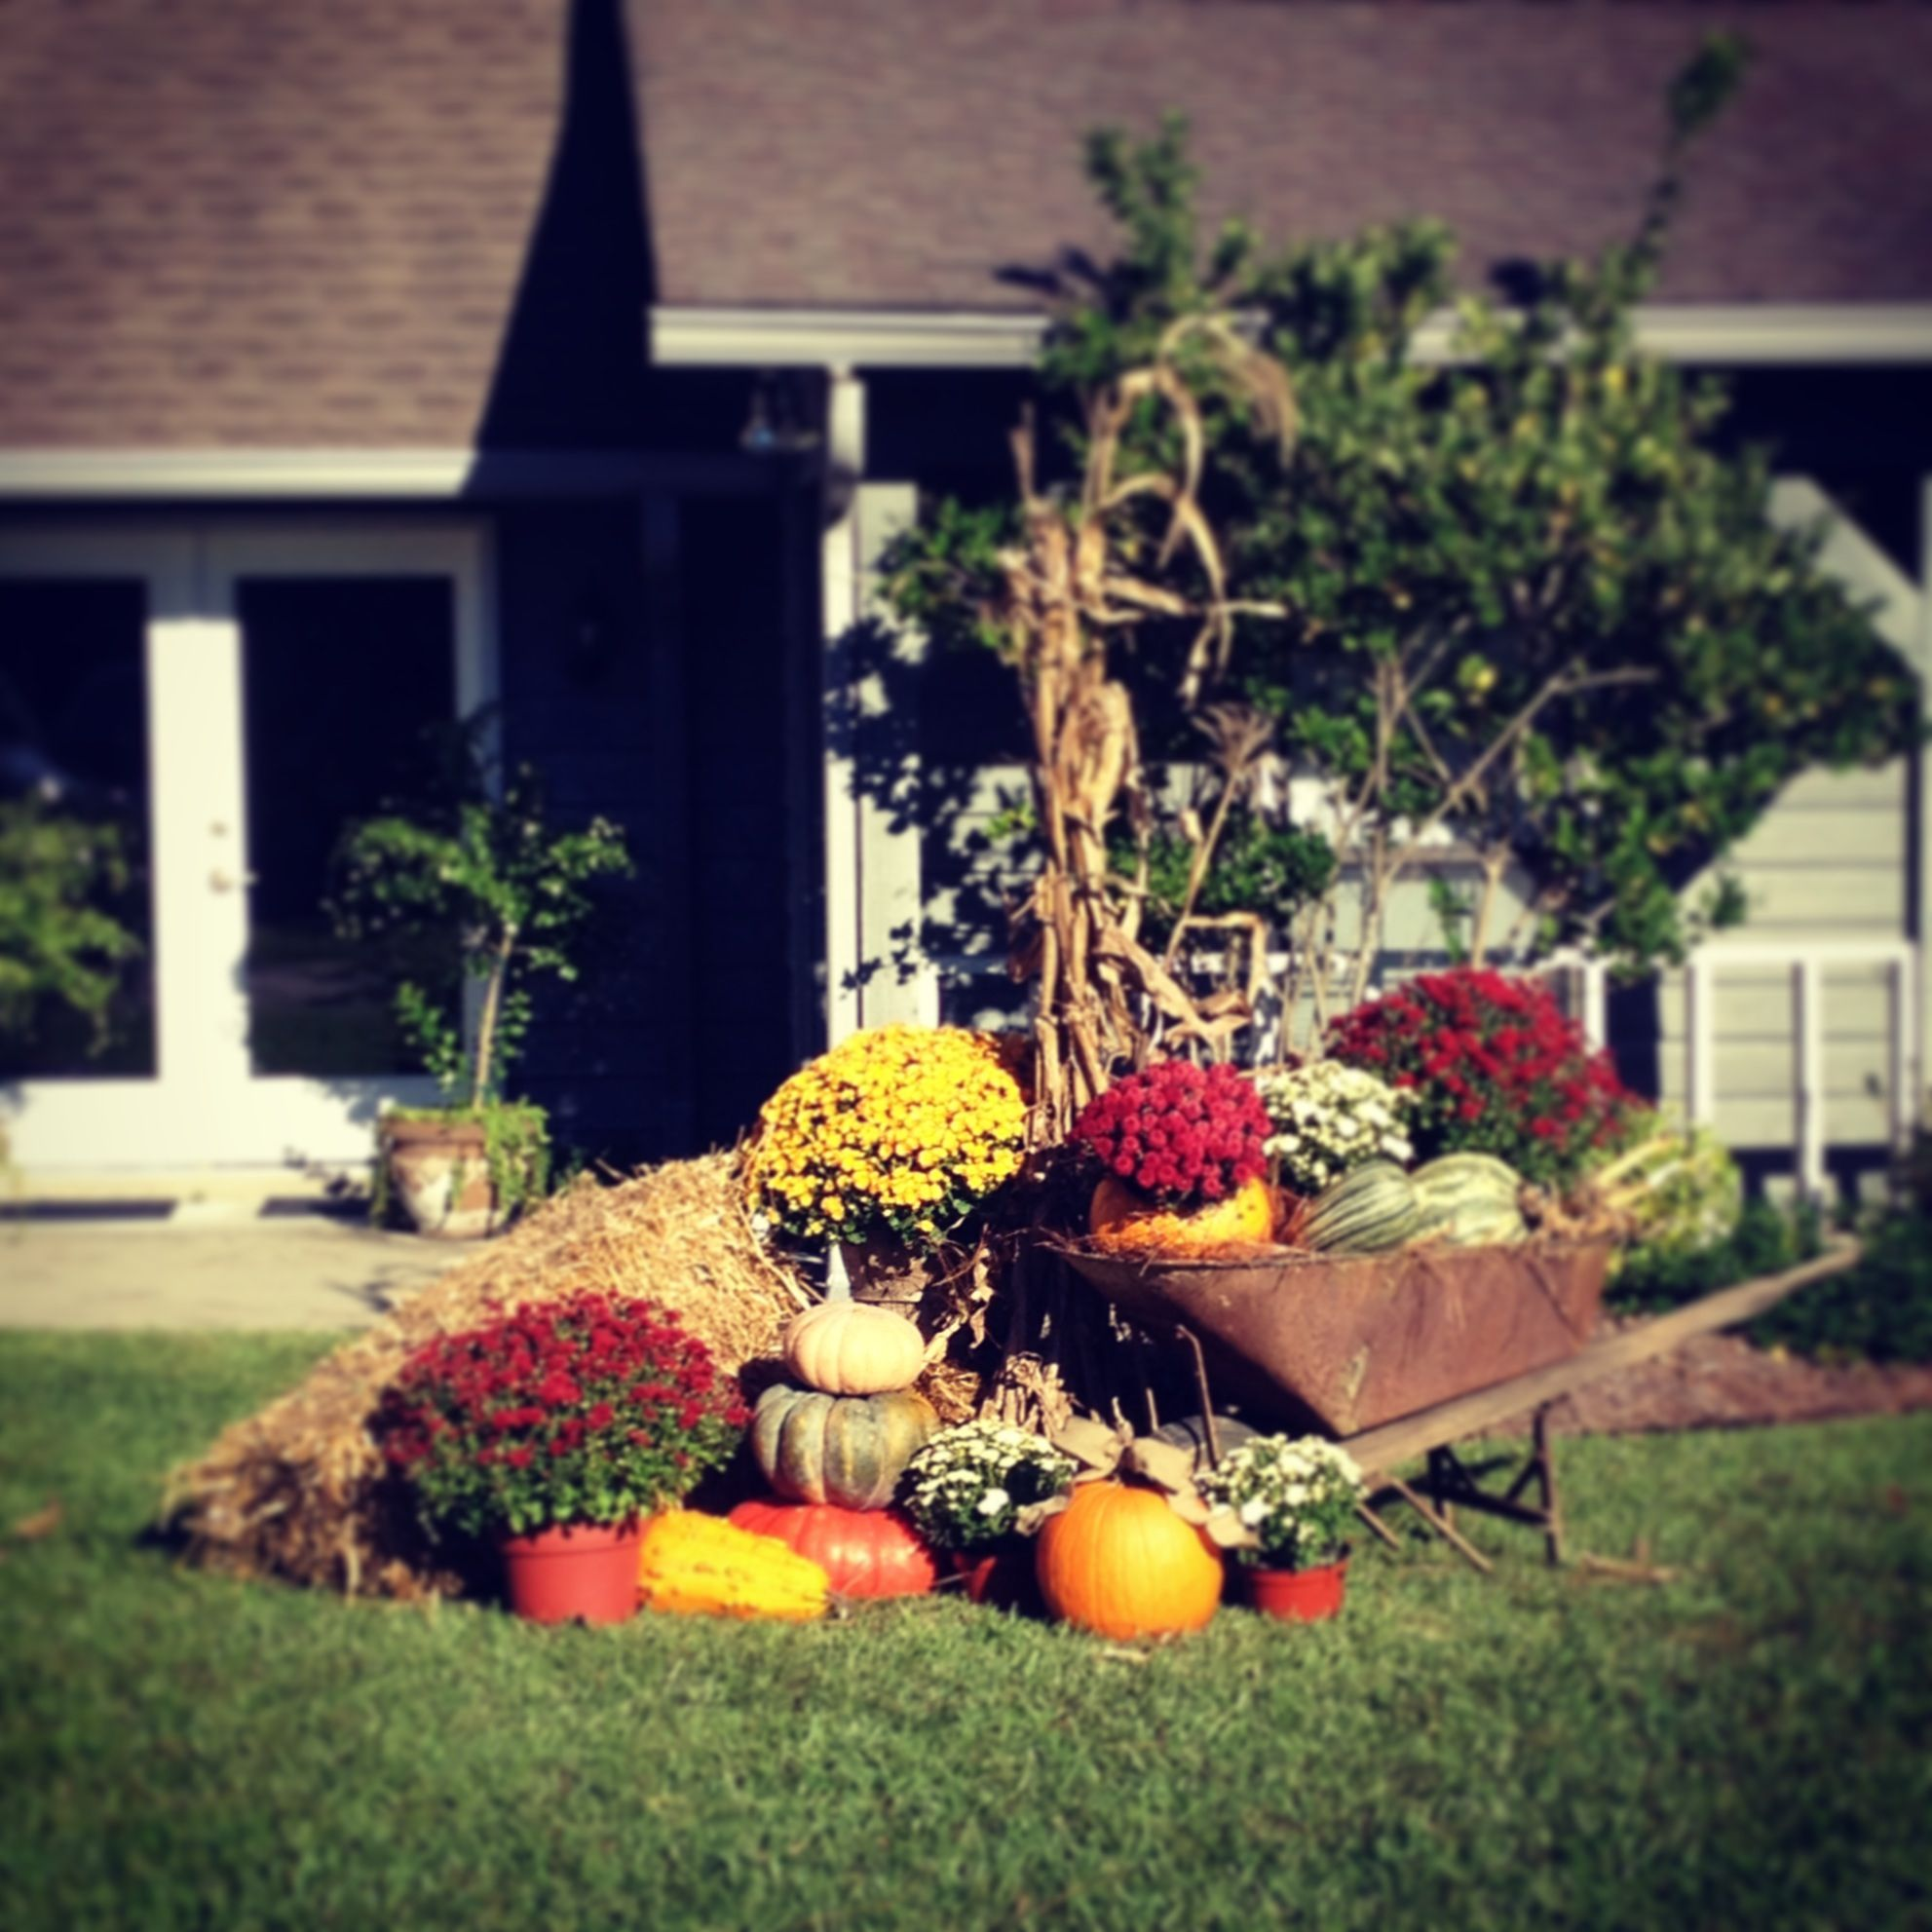 Autumn Yard Decorations: Fall Yard Decorations